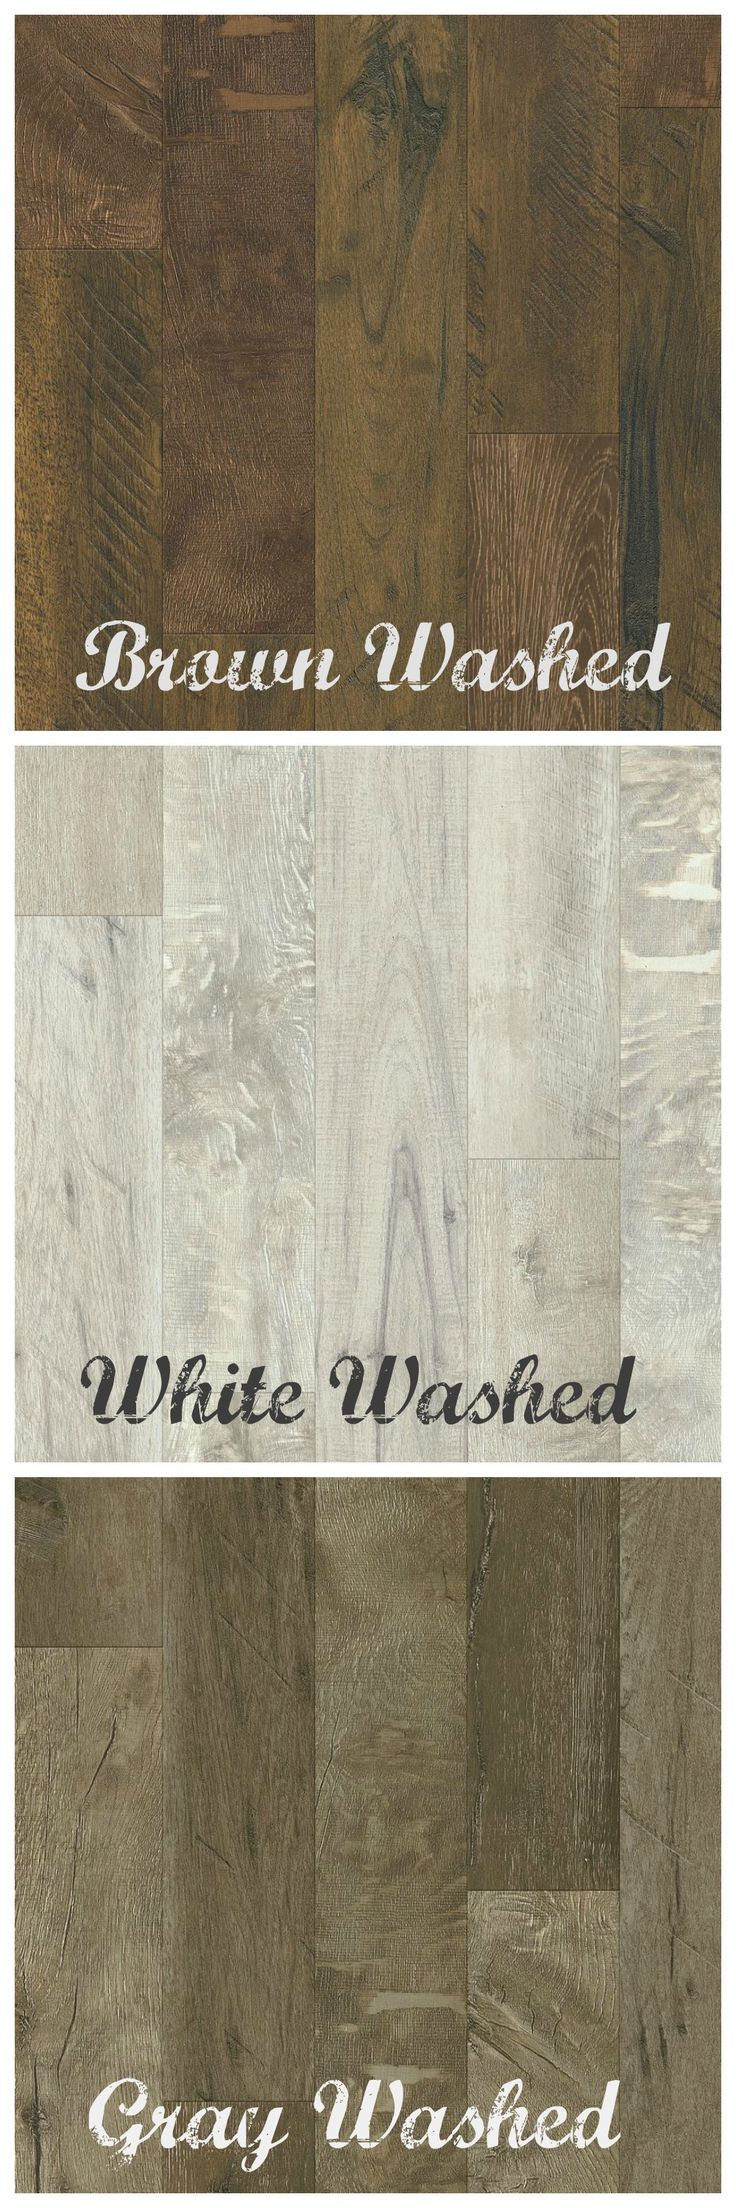 Armstrong Laminate Flooring - Rustics Premium - Forestry Mix in Gray, White, and Brown Washed